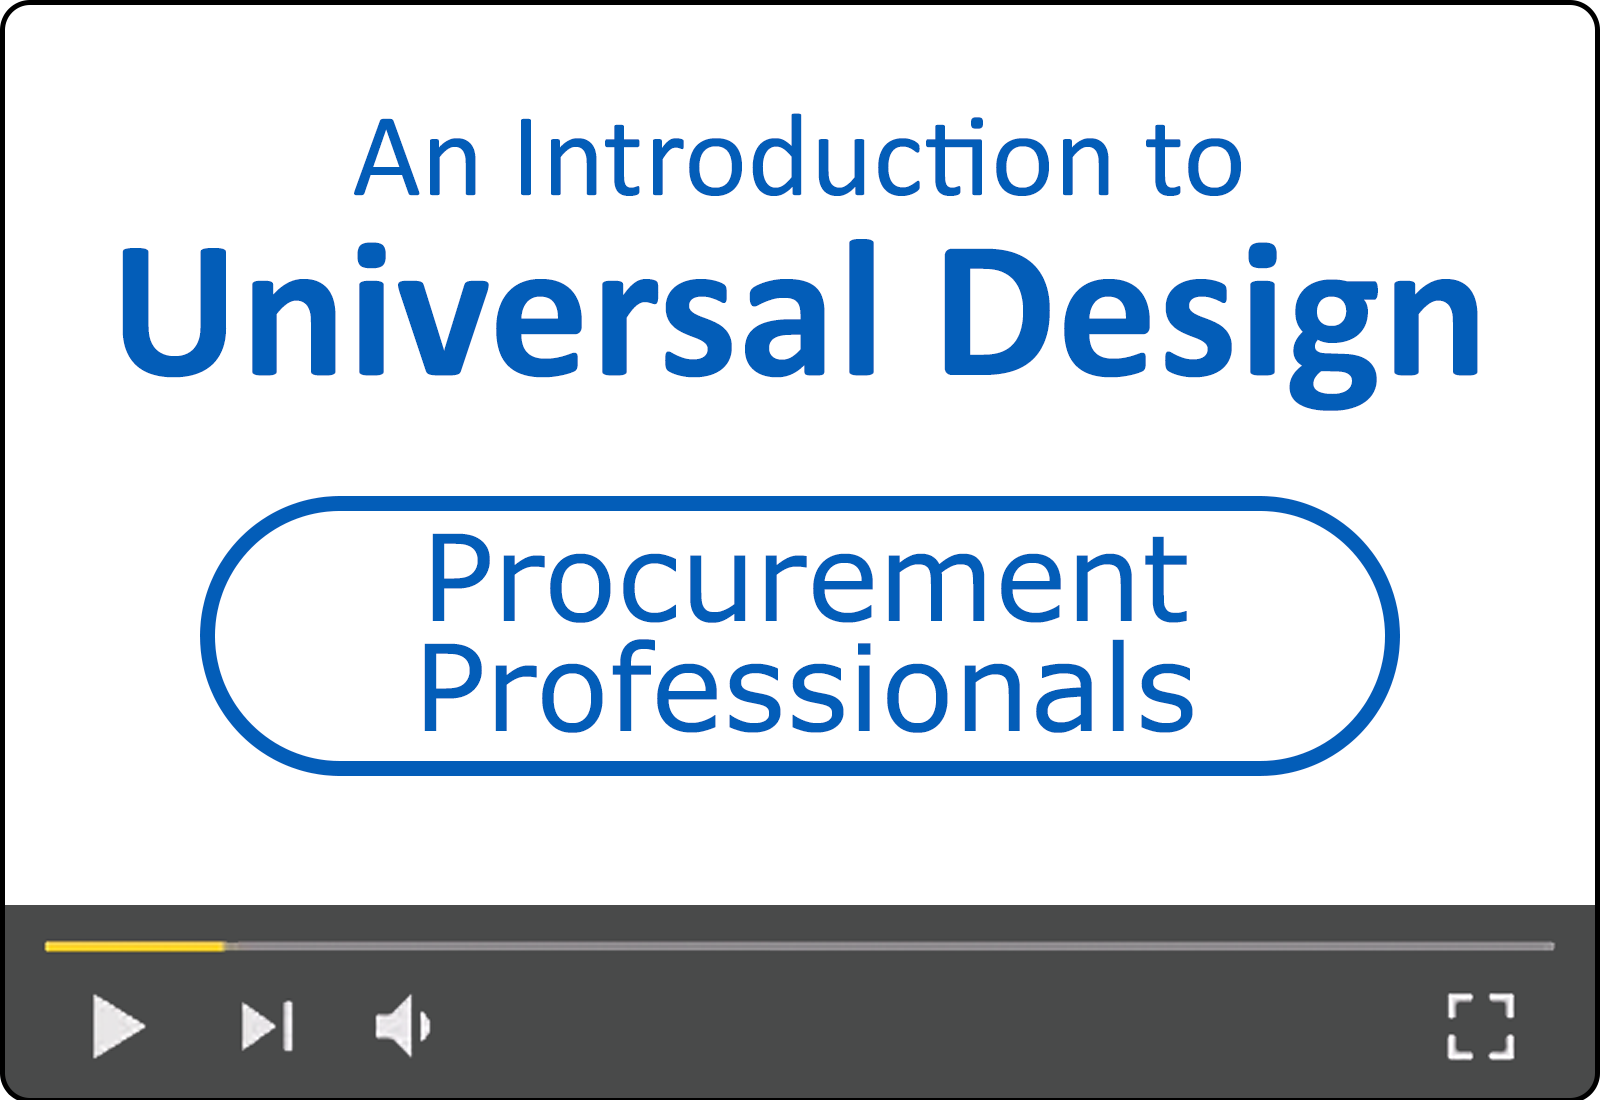 An Introduction to Universal Design for Procurement Professionals